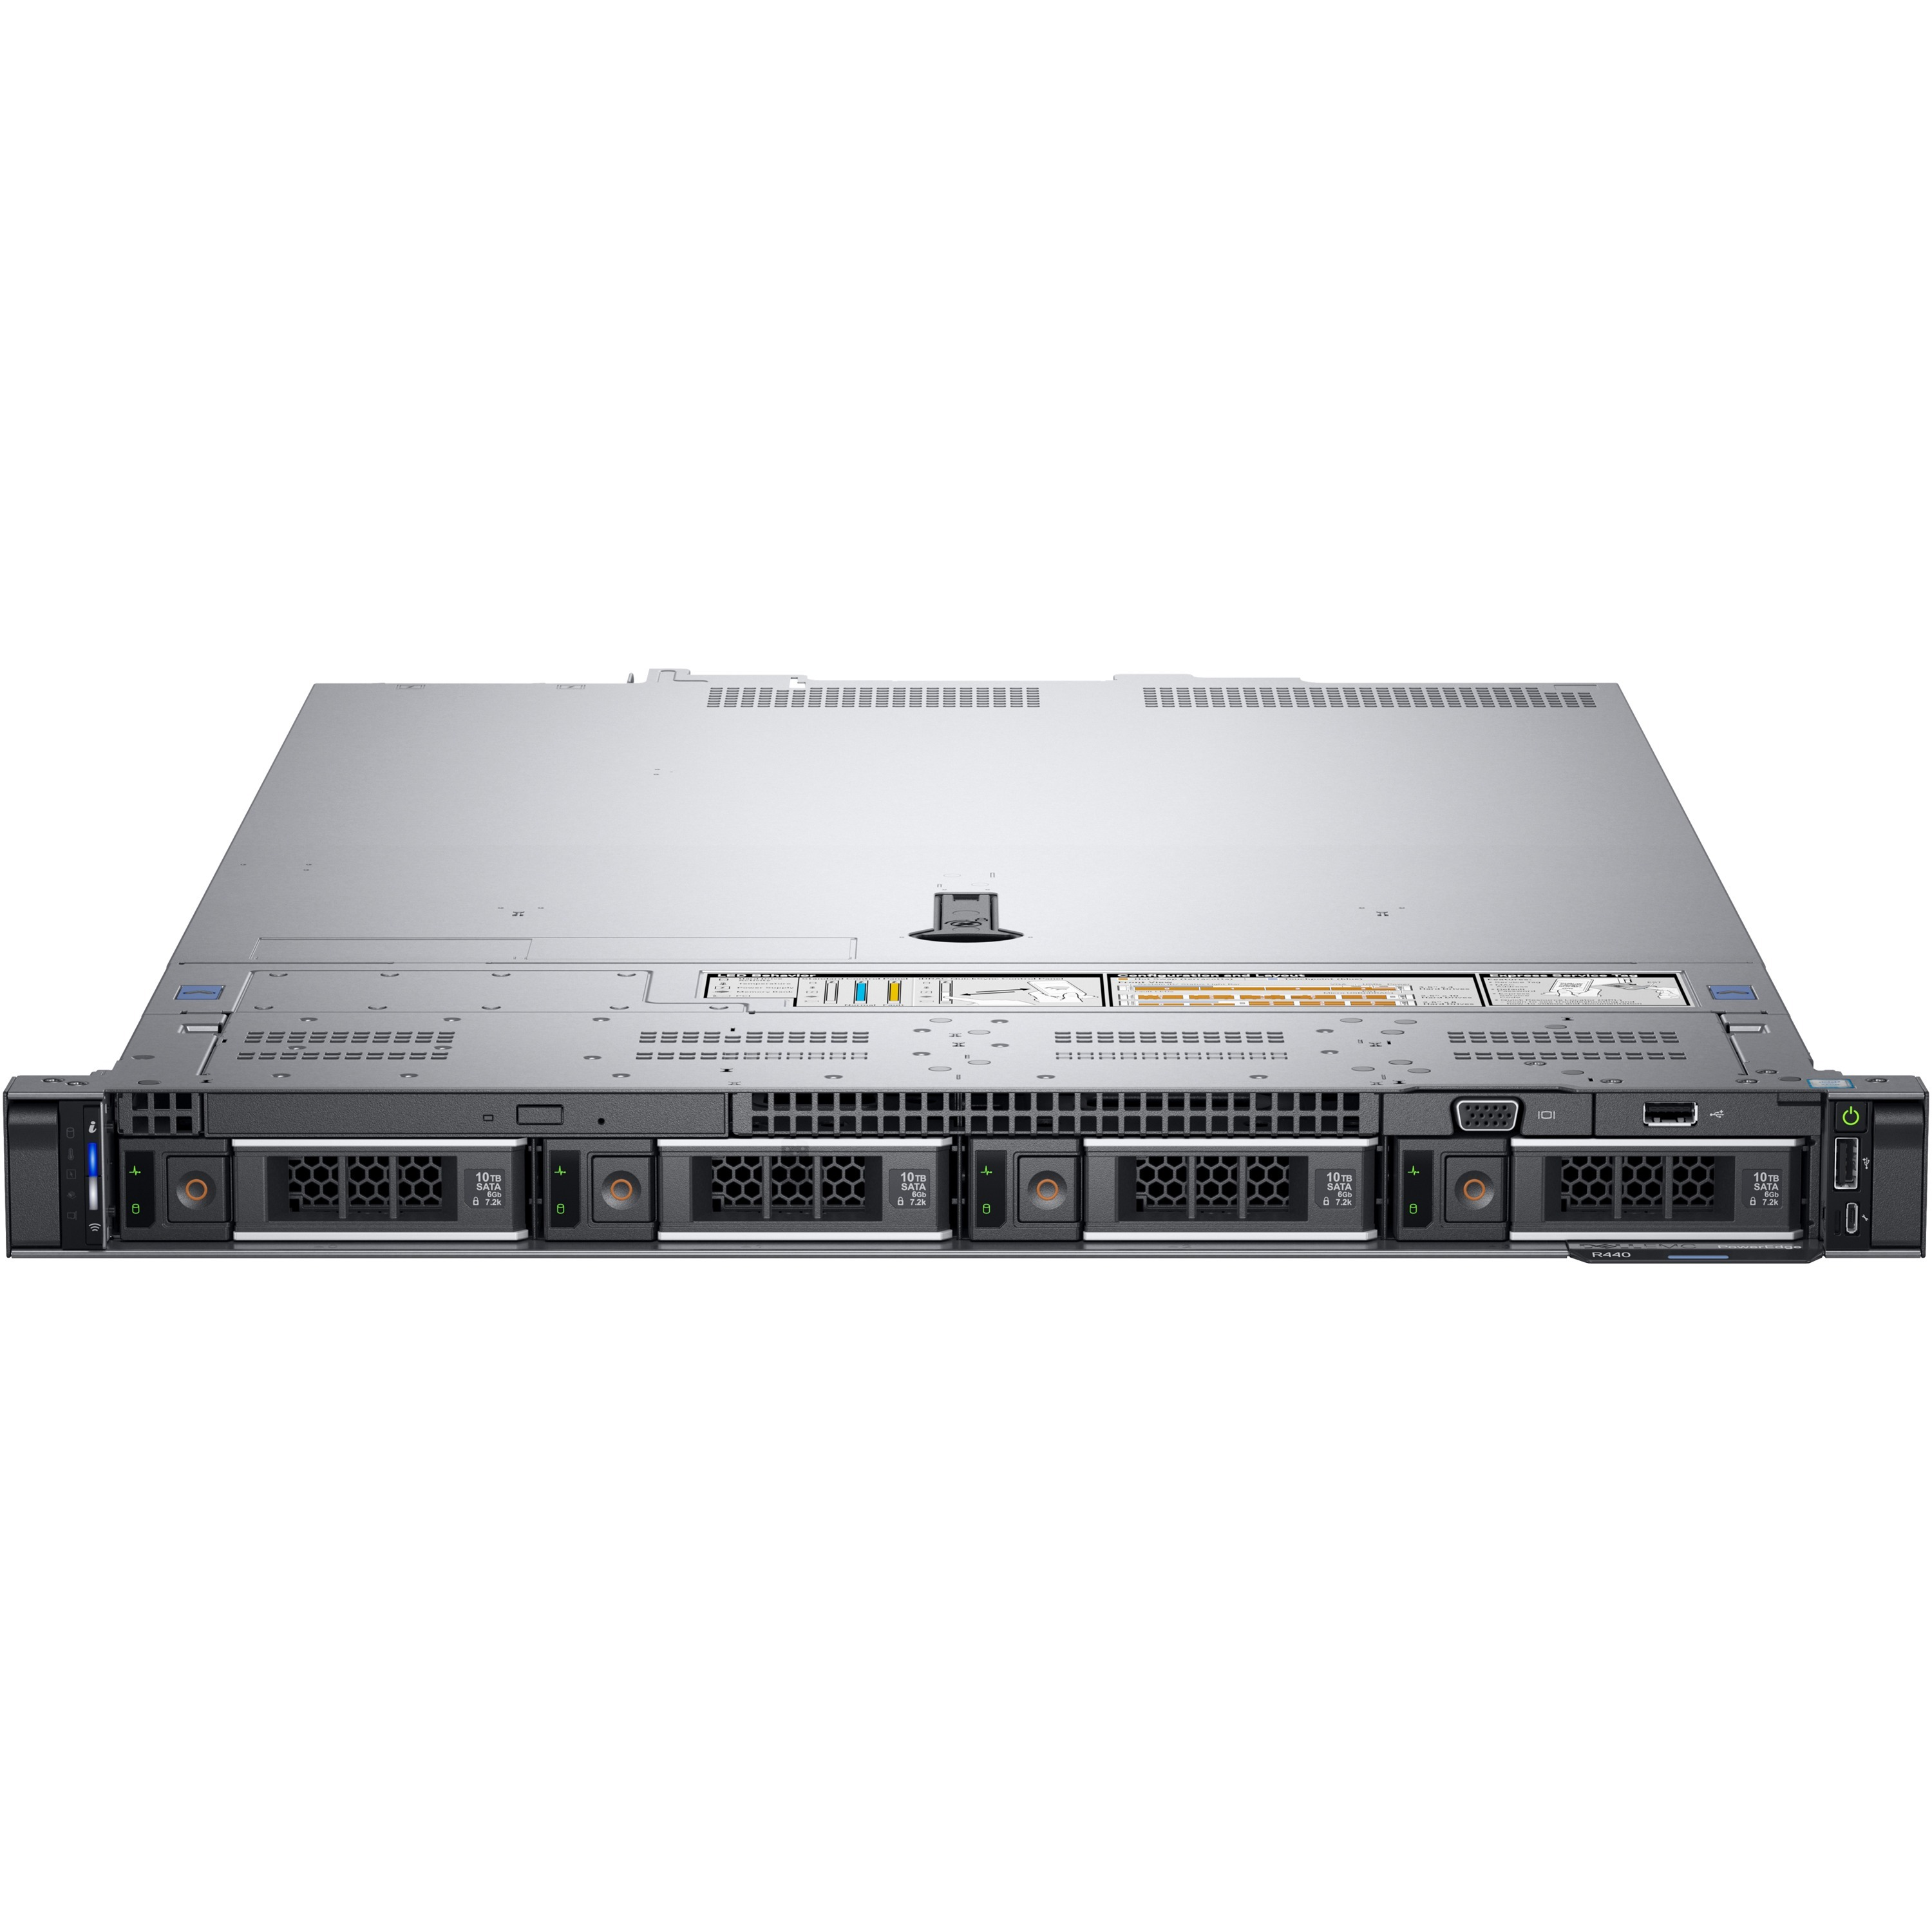 Dell EMC PowerEdge R440 1U Rack Server - 1 x Intel Xeon Bronze 3106  Octa-core (8 Core) 1 70 GHz - 16 GB Installed DDR4 SDRAM - 1 TB (1 x 1 TB)  Serial